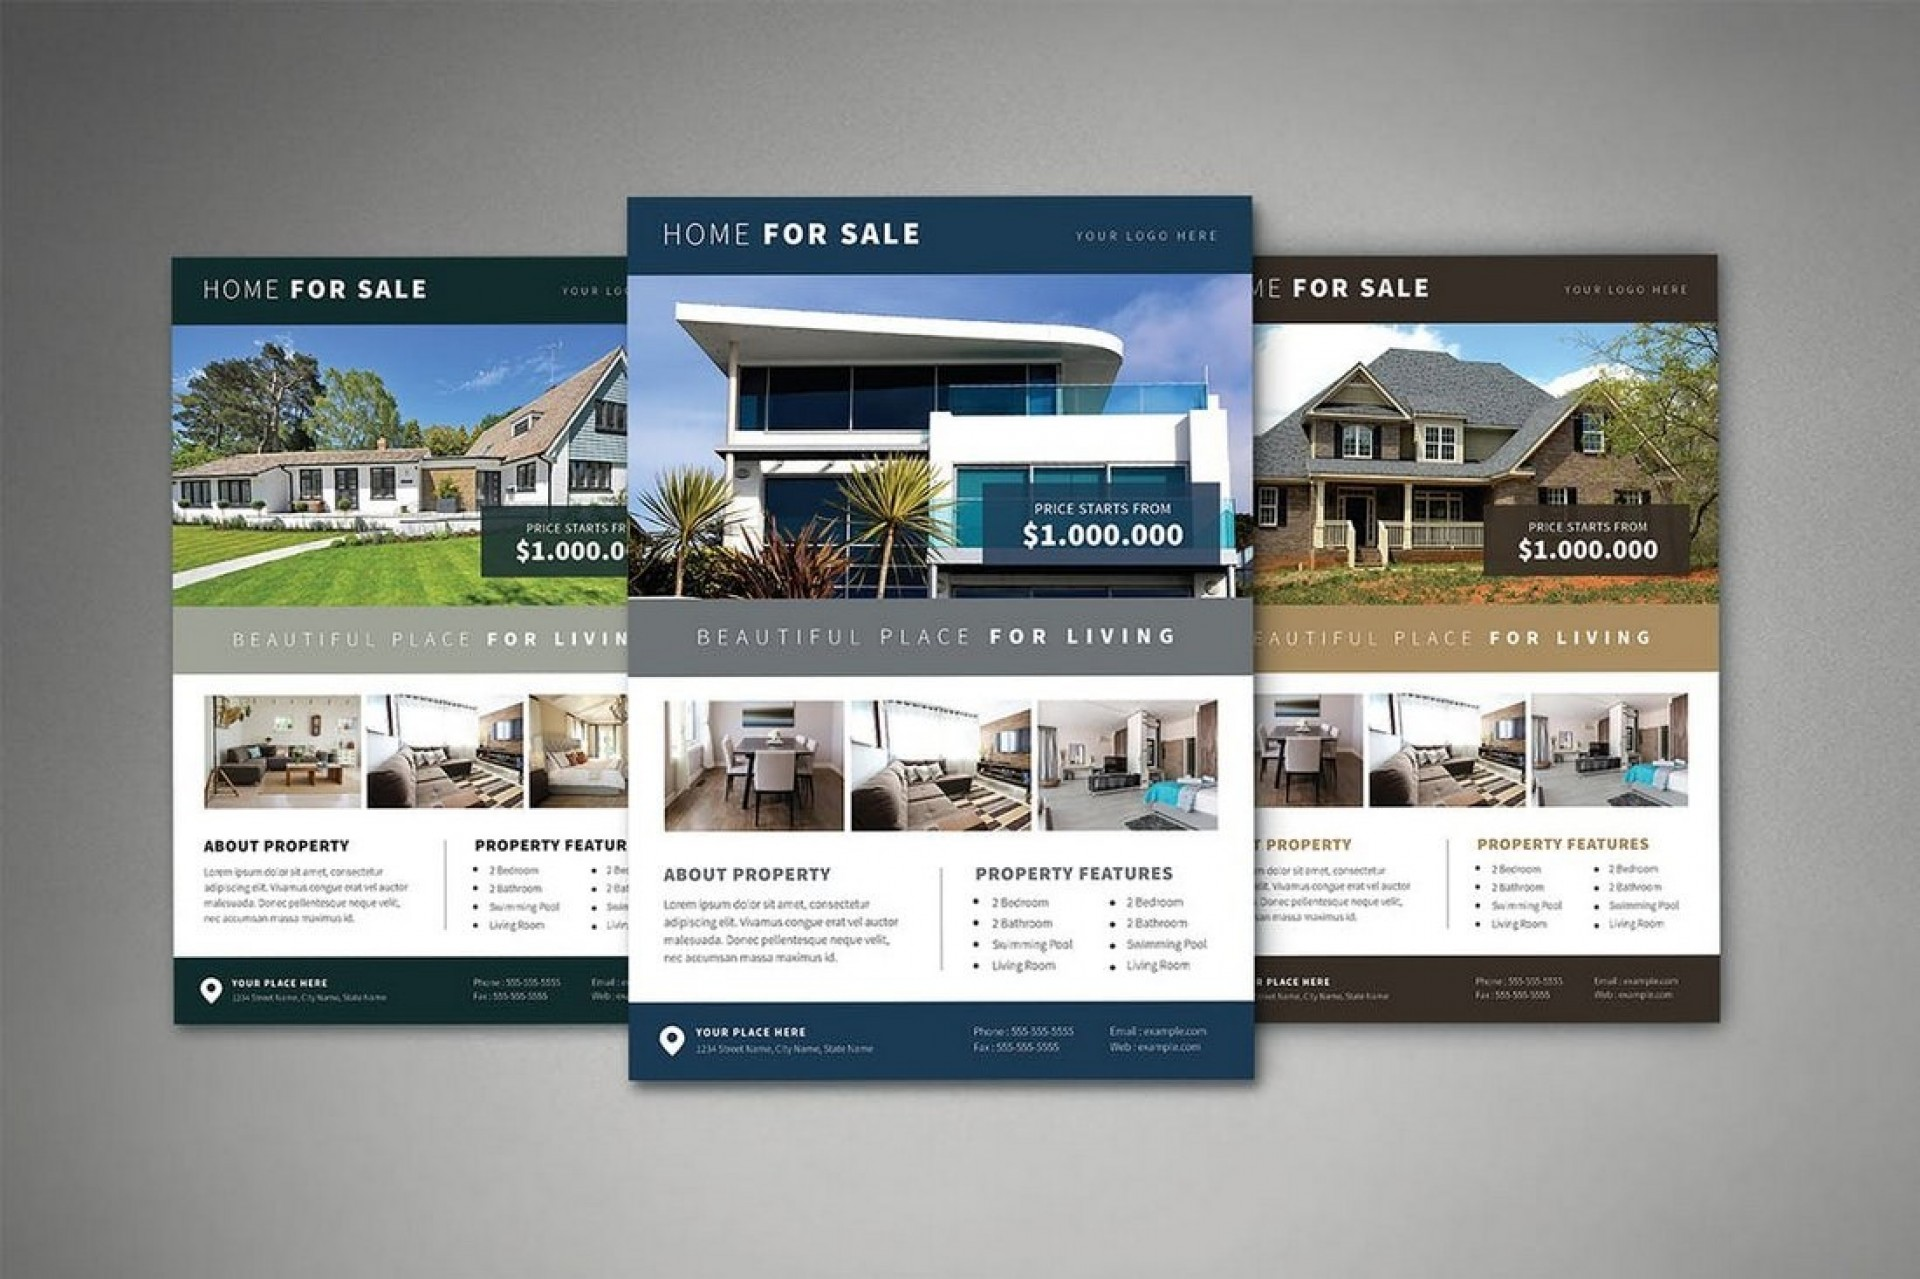 009 Awful Real Estate Marketing Flyer Template Free High Definition 1920